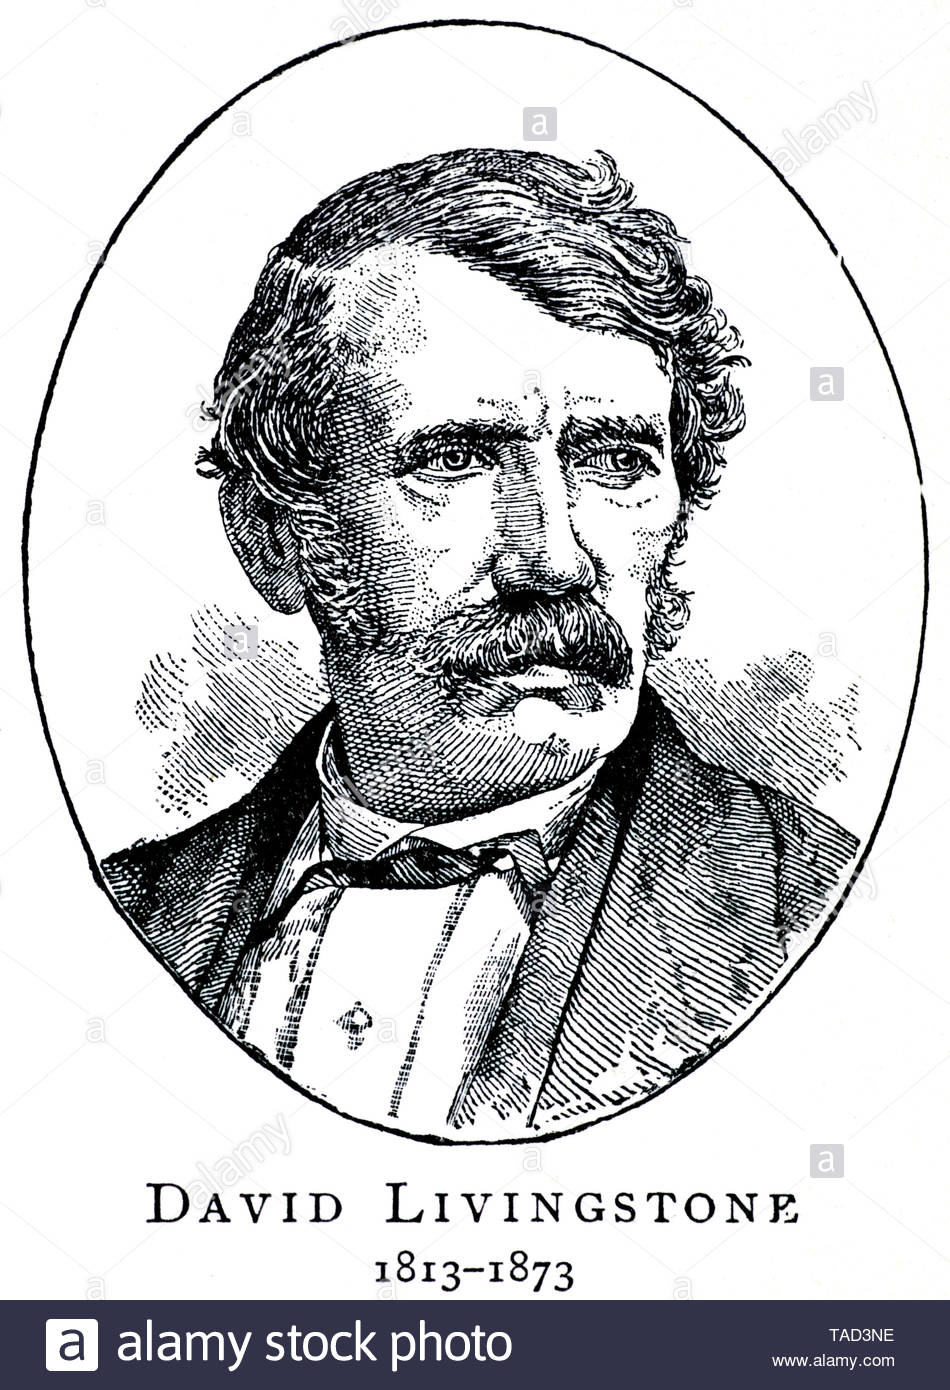 David Livingstone 1813 –1873, Scottish medical missionary and explorer of  the African continent - Stock Image